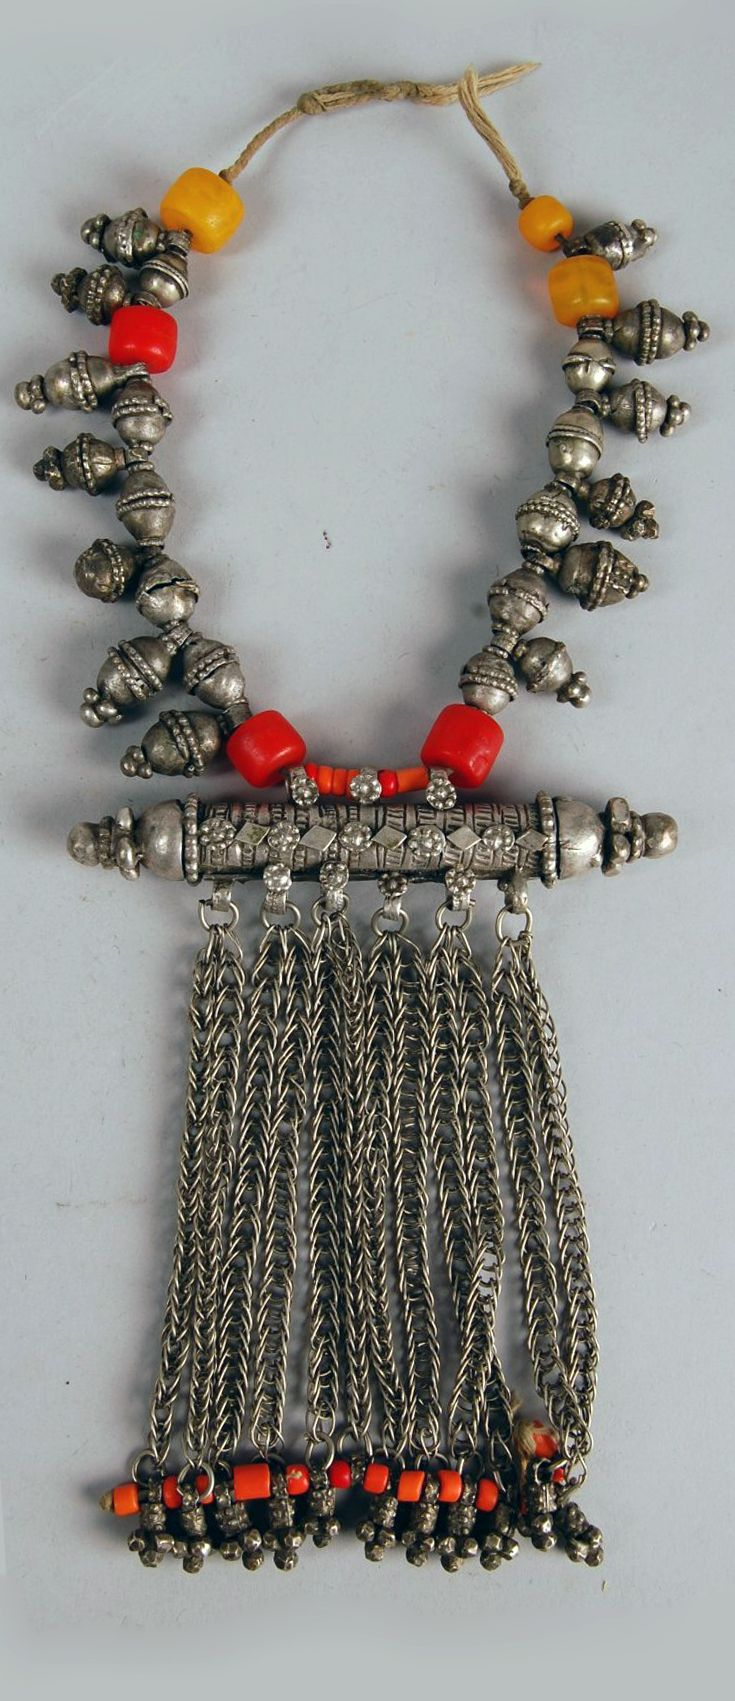 Yemen ~ Razih | Silver necklace of plain bobbles (xaTrah/xaTaayir) and knobbed bobbles (zirri/zurarah) and red and yellow beads, with amulet-case (Harz) with chains and orange beads pendant from it. | 20th century, acquired by the British Museum in 1993.